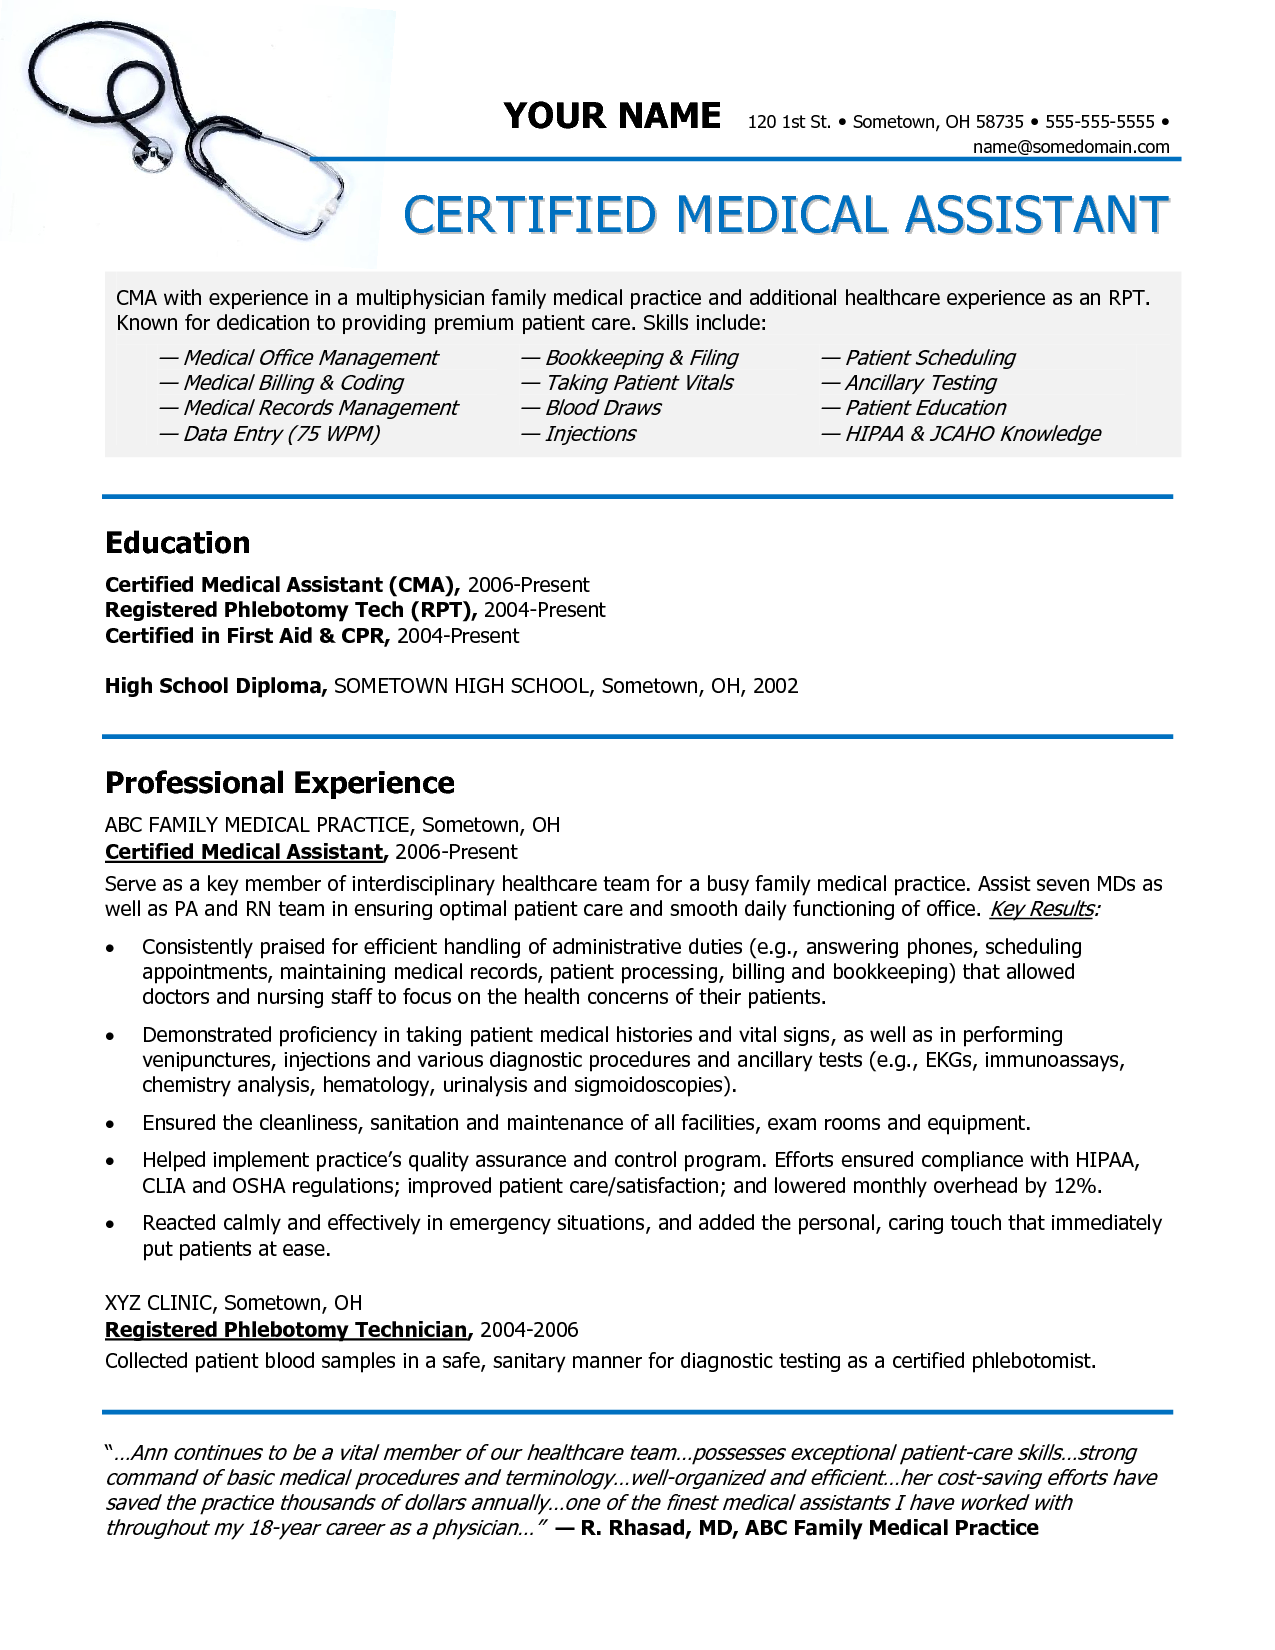 Medical assistant resume entry level examples 18 medical assistant medical assistant resume entry level examples 18 medical assistant yelopaper Gallery